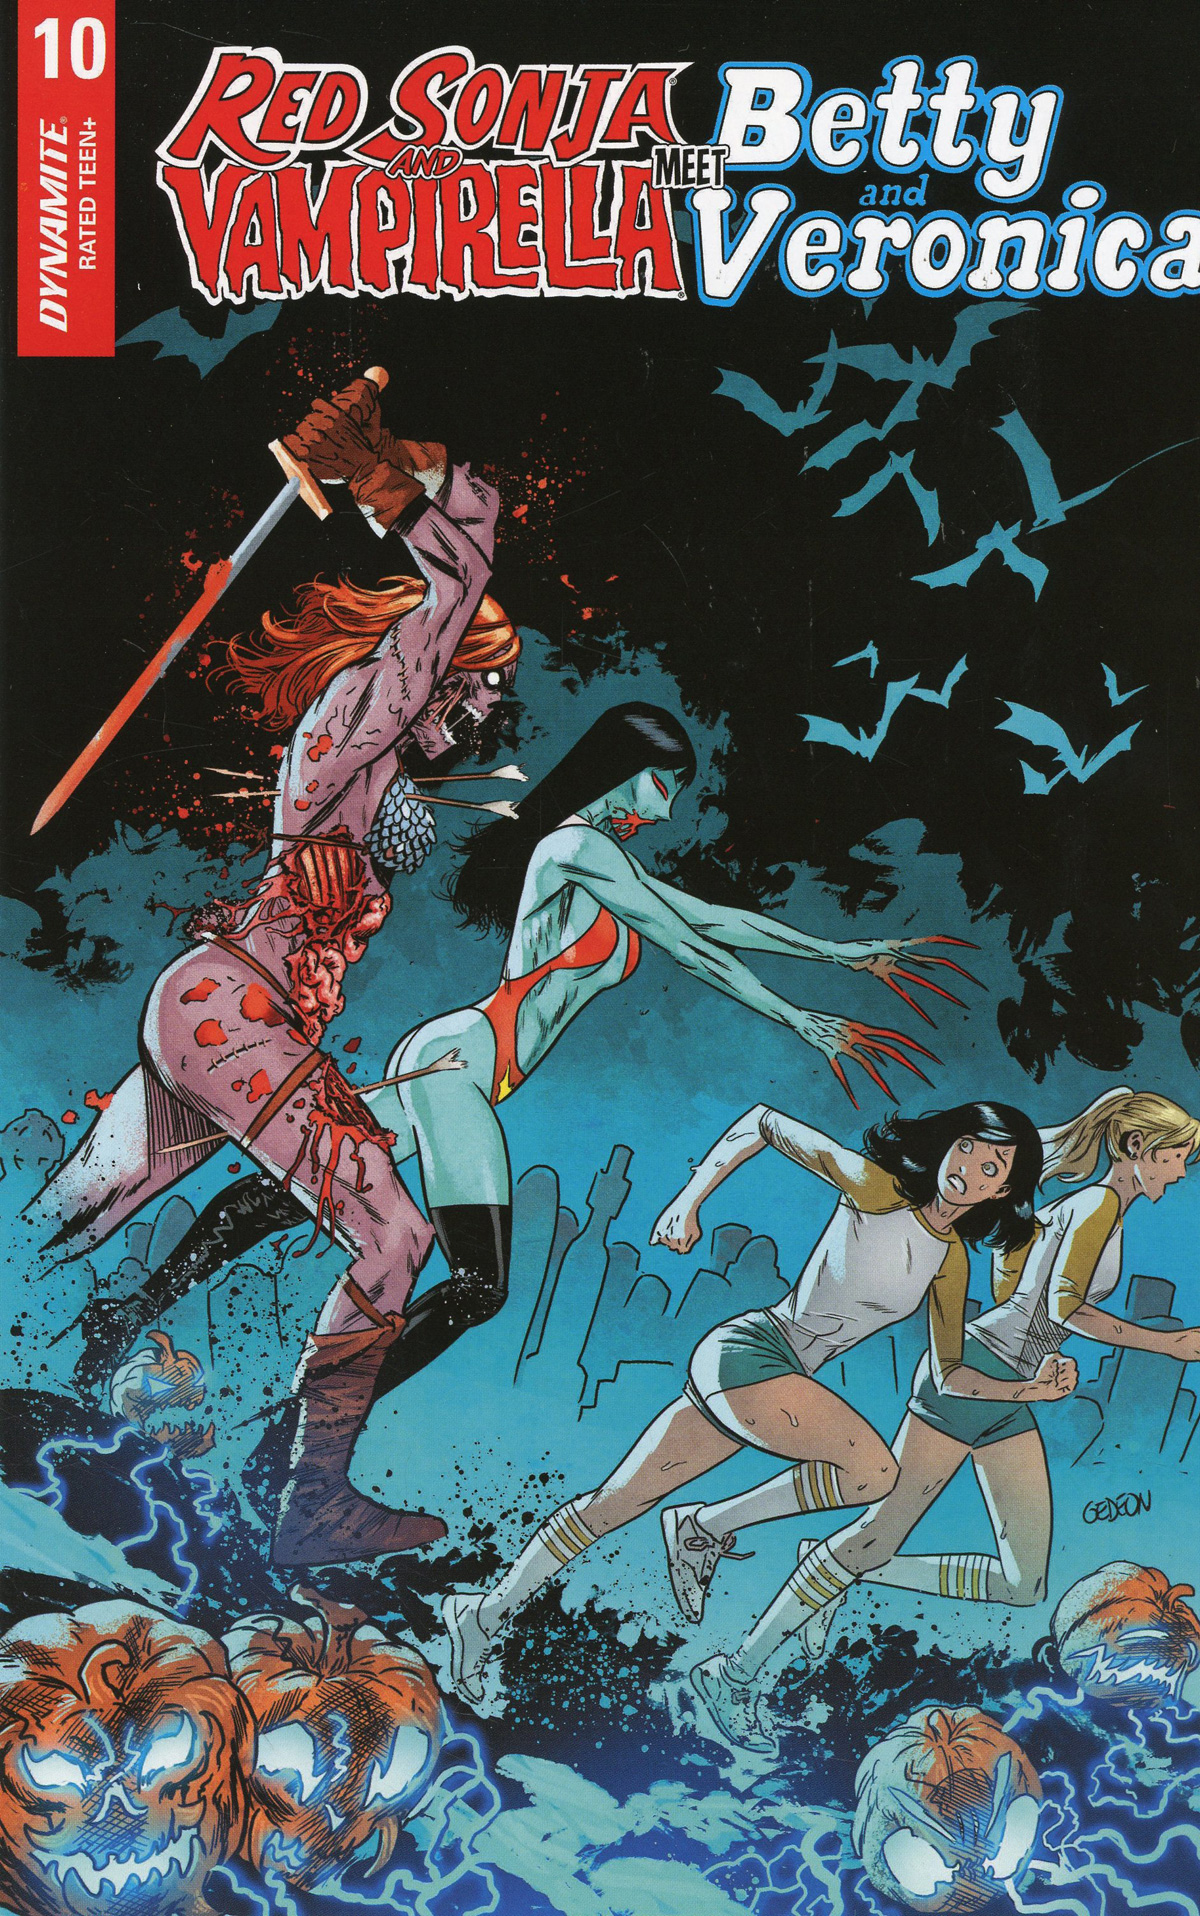 Red Sonja And Vampirella Meet Betty And Veronica #10 Cover F Incentive Juan Gedeon Zombie Variant Cover